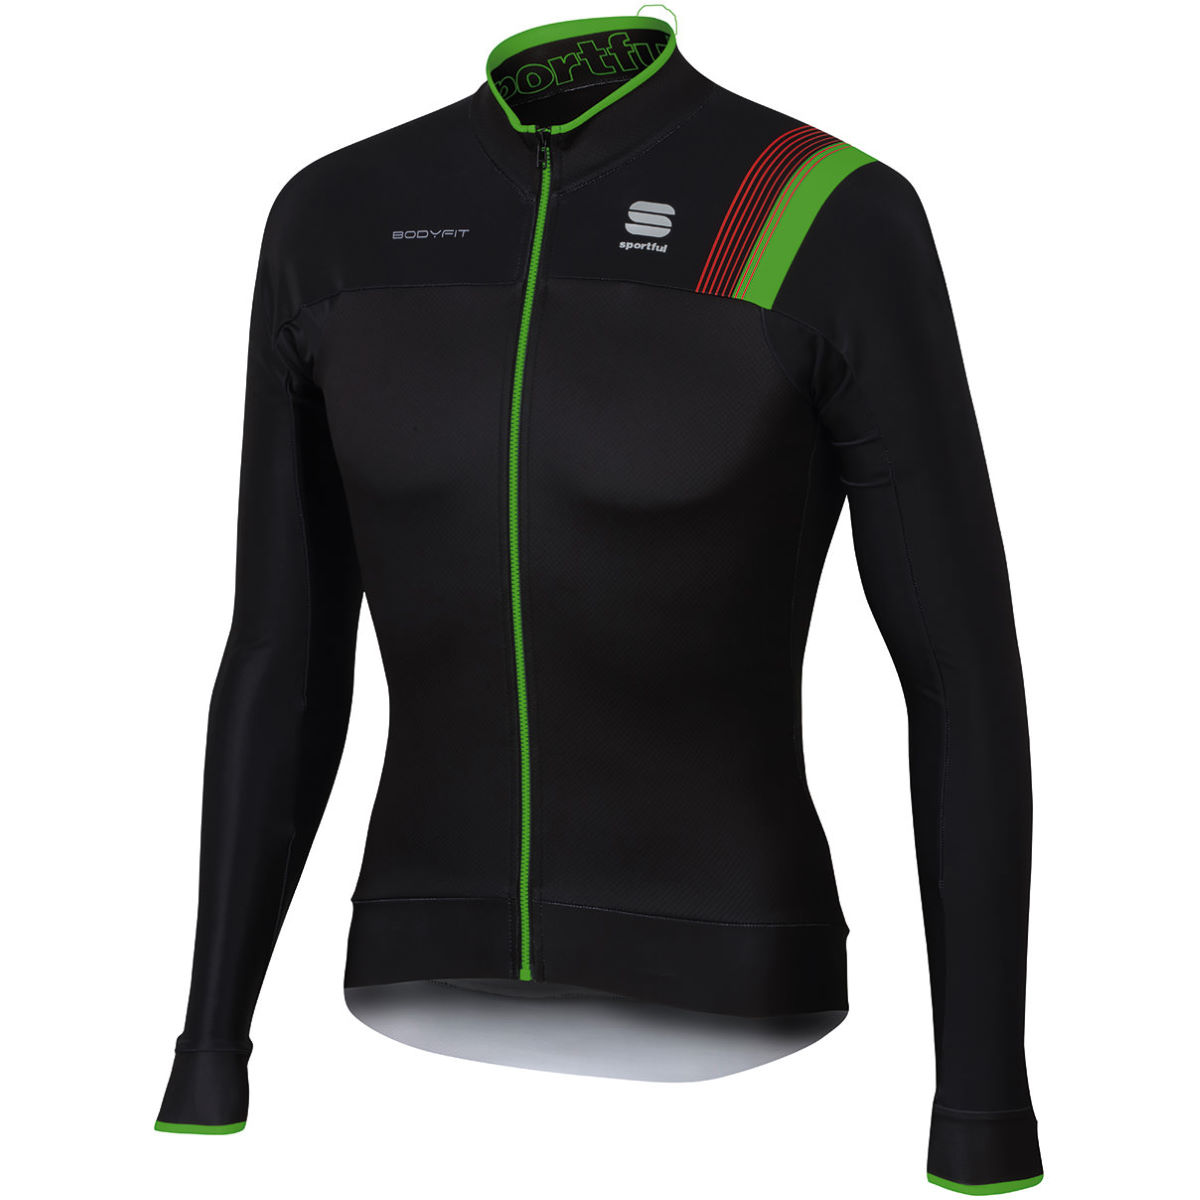 Maillot Sportful BodyFit Pro Thermal - M Black/Green Fluo/Red